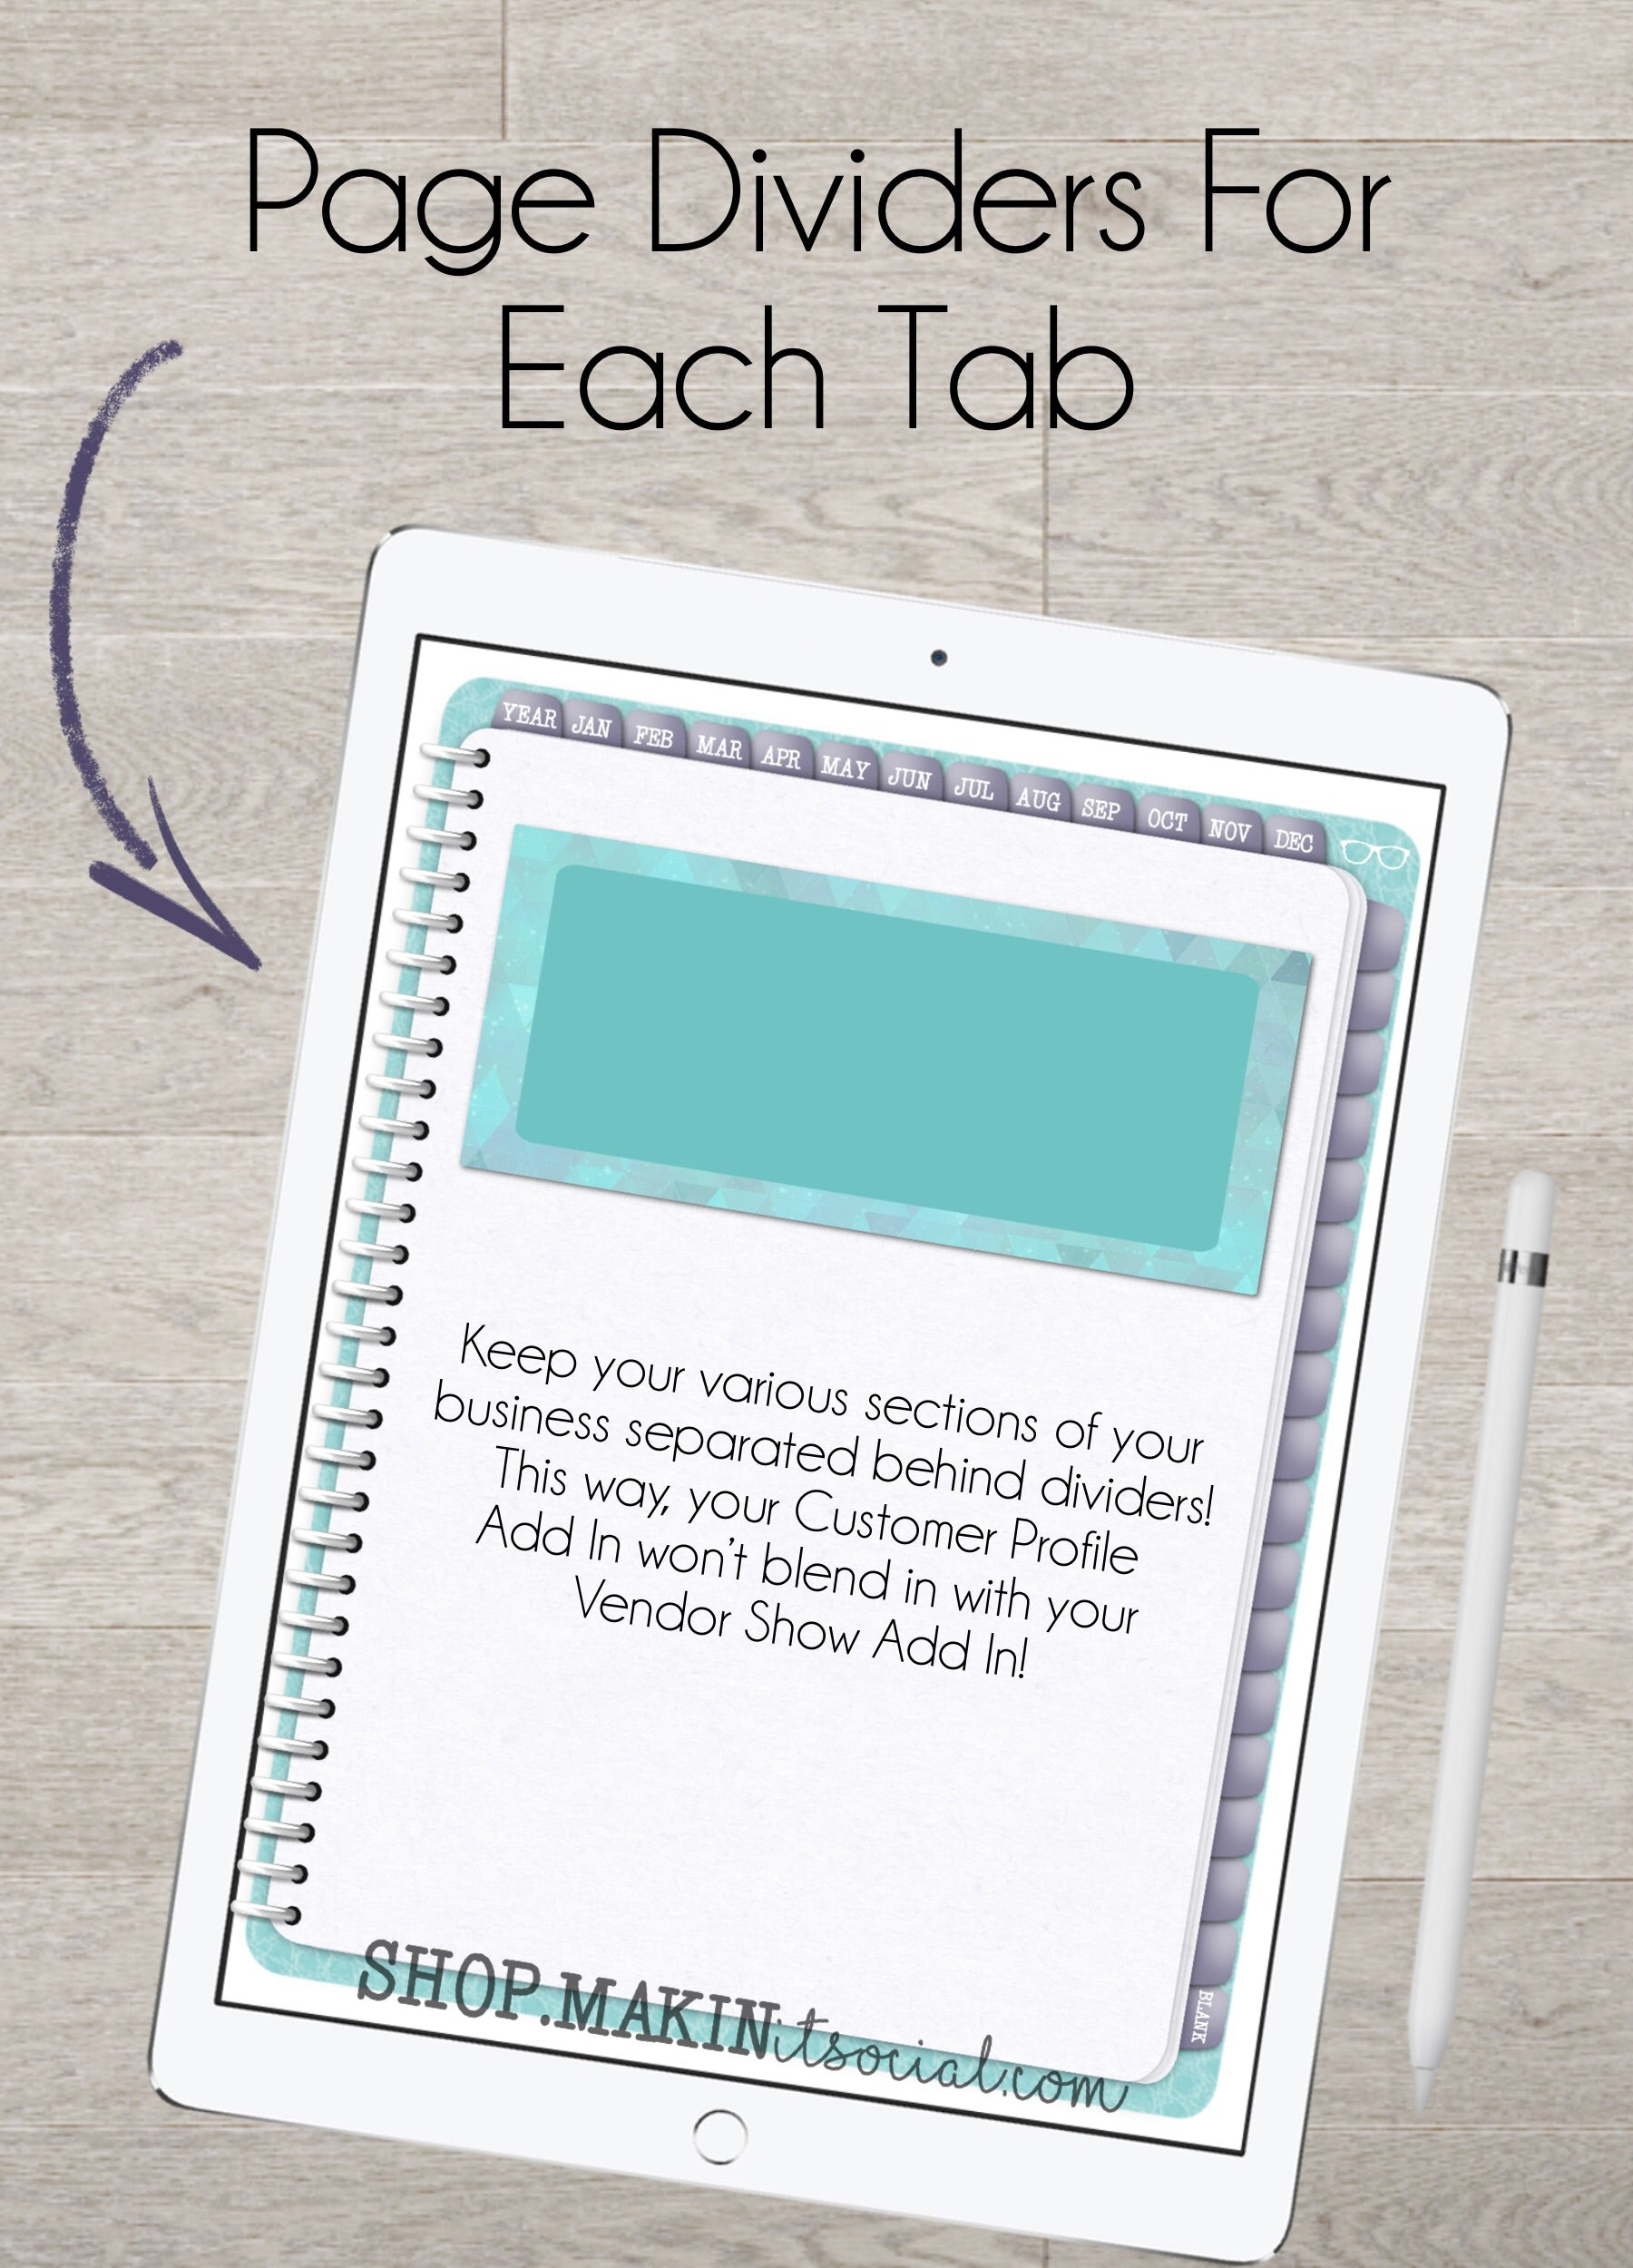 Makin it social Now What Digital Direct Sales Planner Teal Undated Page dividers on each tab